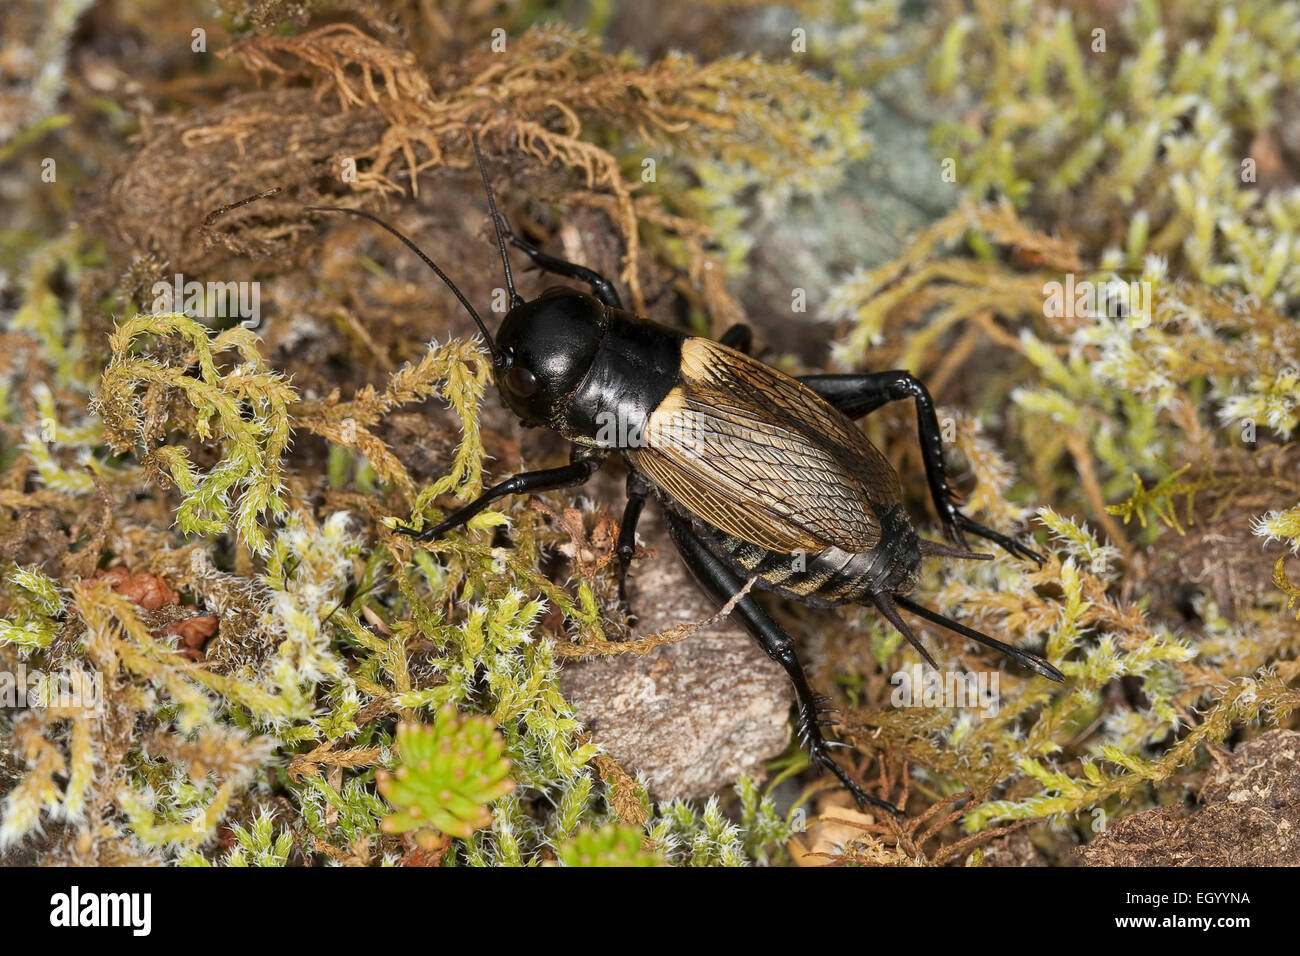 Field cricket, female, Feldgrille, Weibchen, Feld-Grille, Grille, Gryllus campestris, Grillen, Gryllidae, Grillon - Stock Image